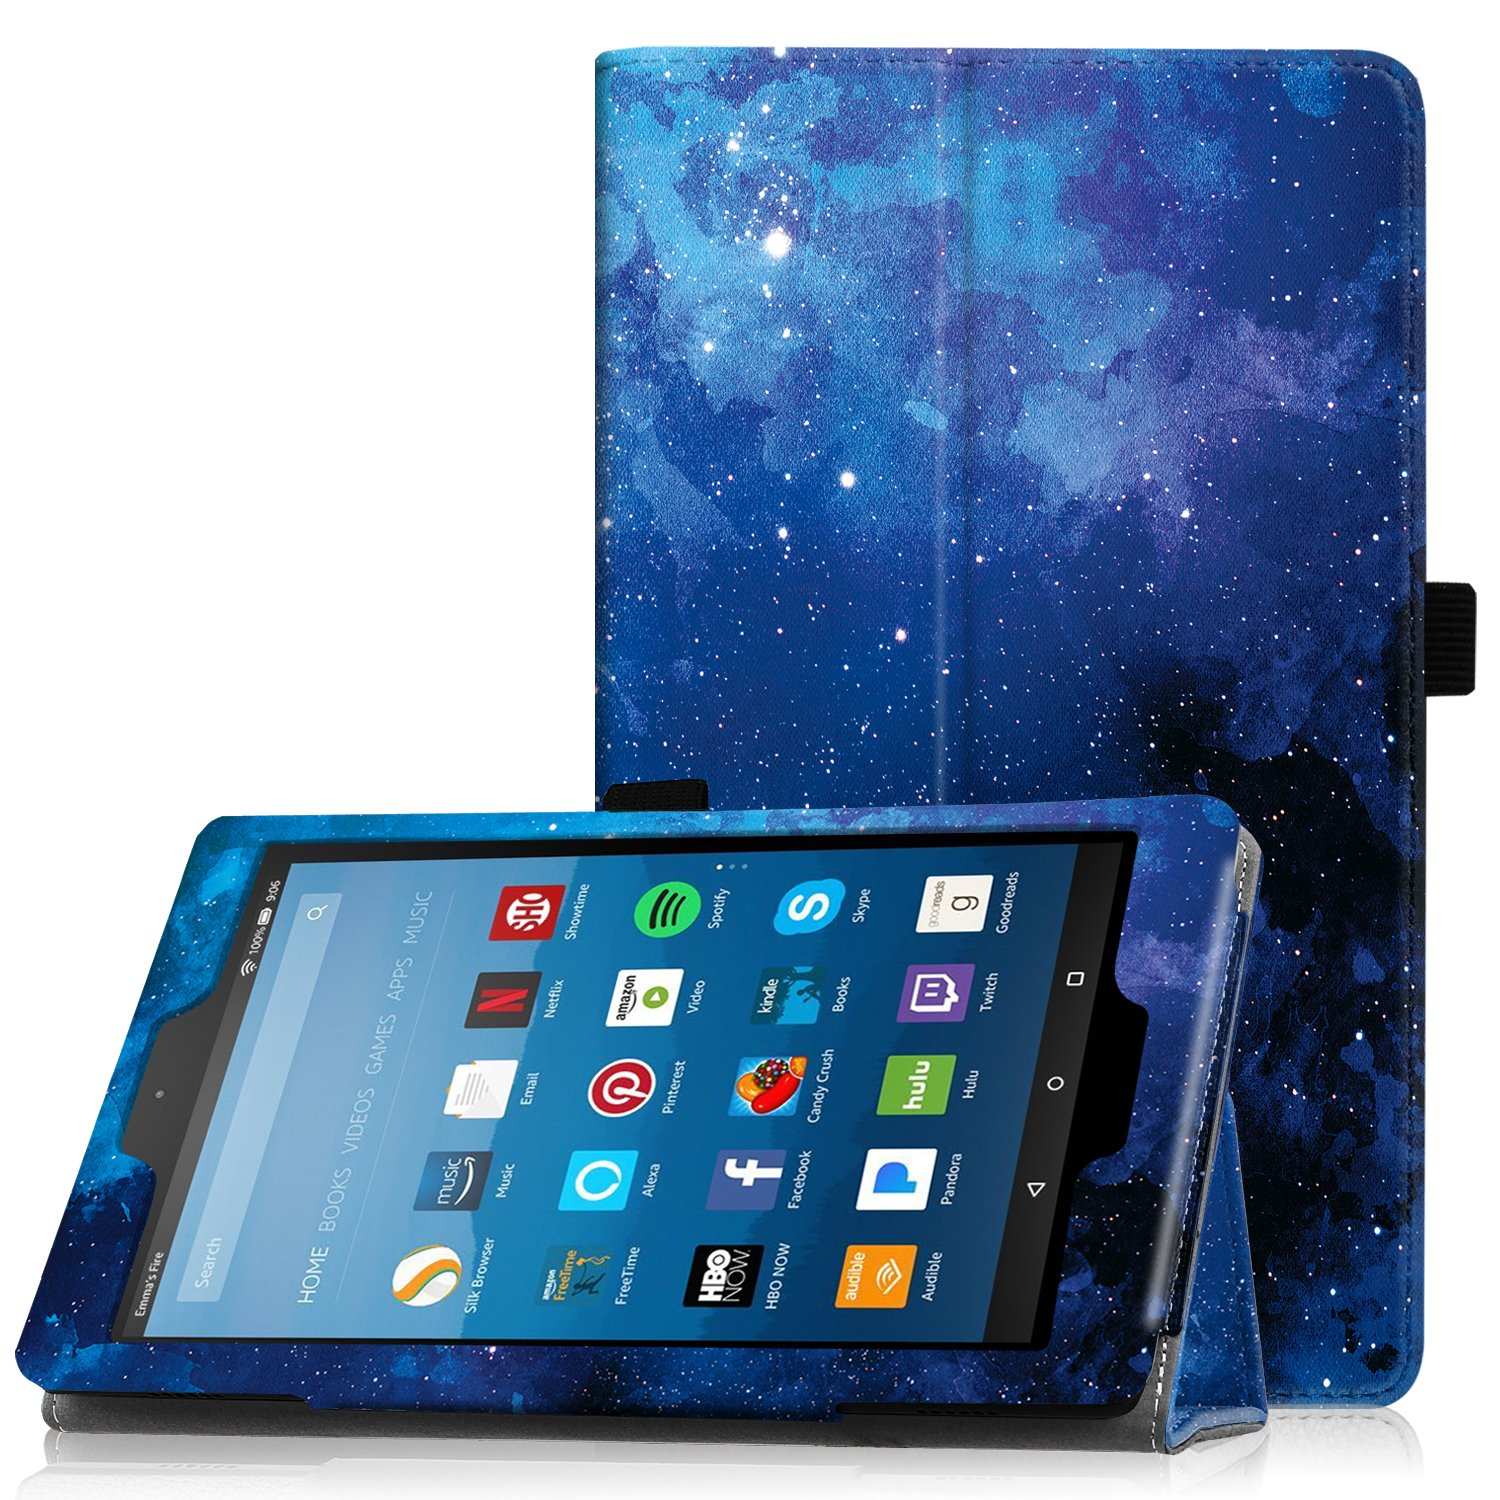 Famavala Folio Case Cover with Auto Wake/Sleep Feature for 8'' Fire HD 8 Tablet [7th Generation 2017/6th Generation 2016] 8-Inch Tablet (BlueSky)